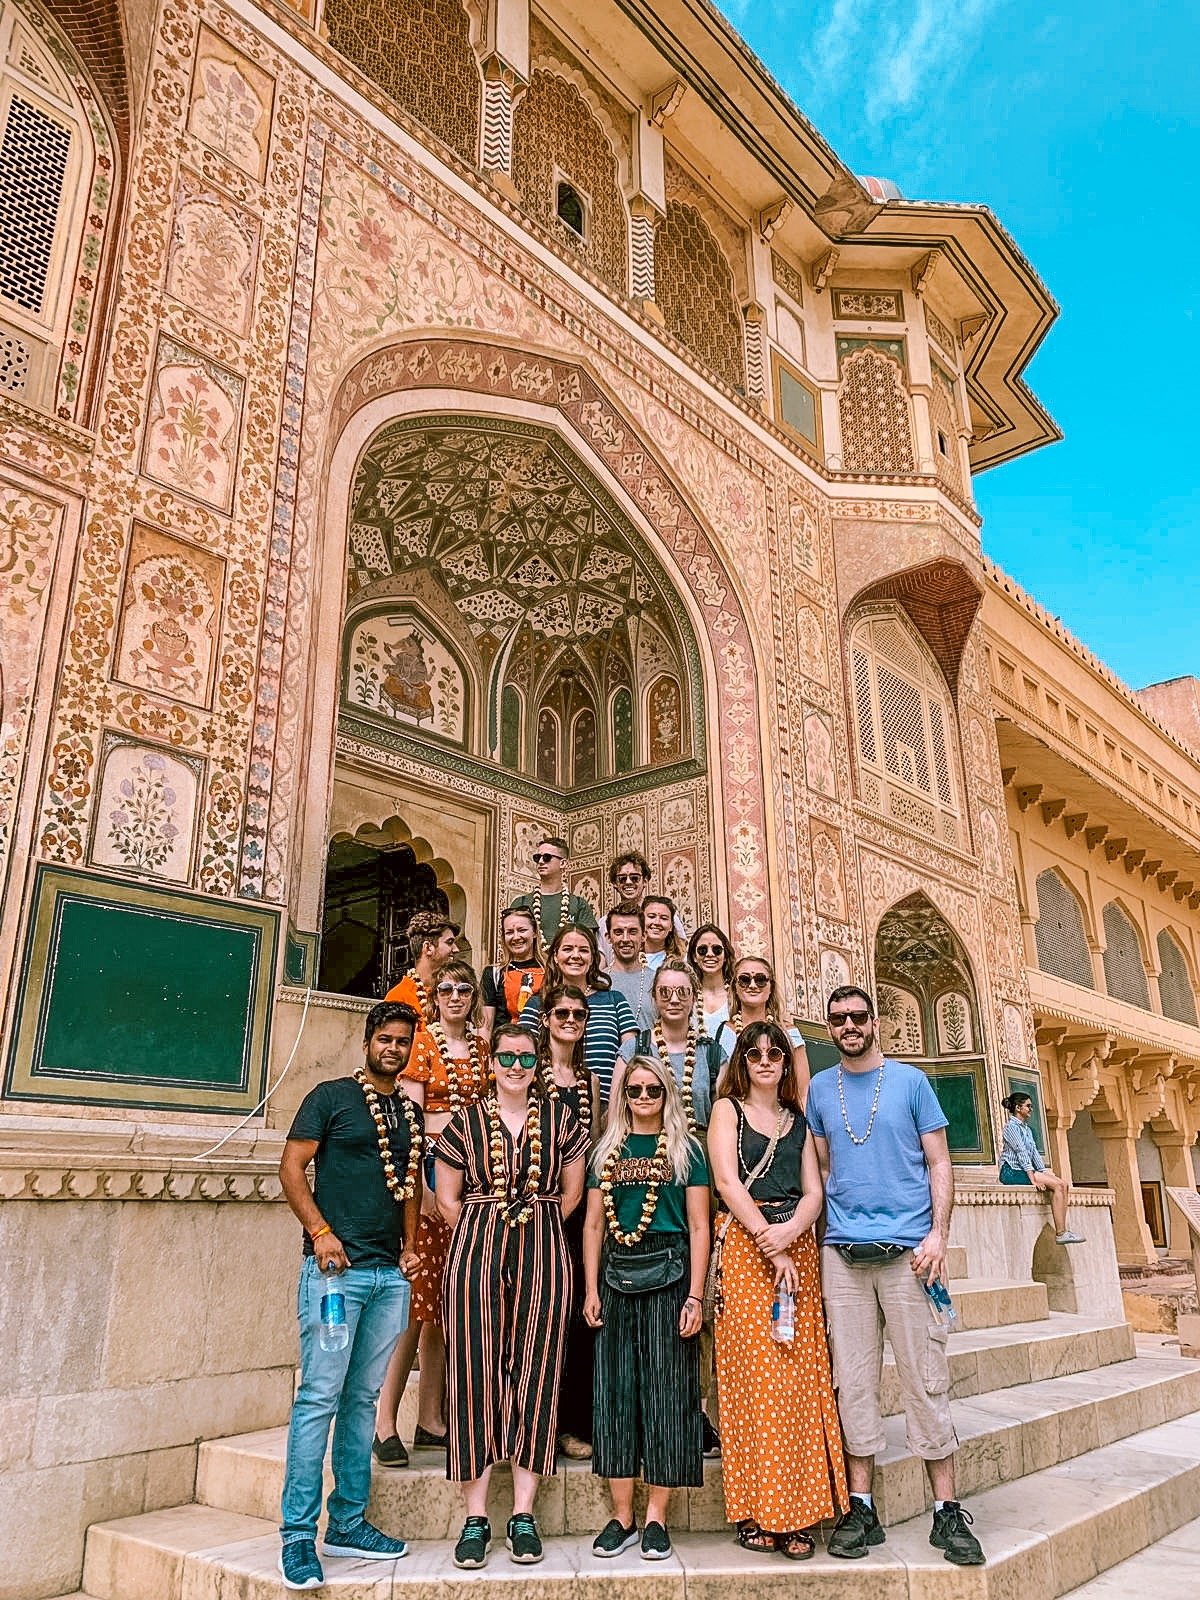 A group picture outside the beautiful mosaics of a fort